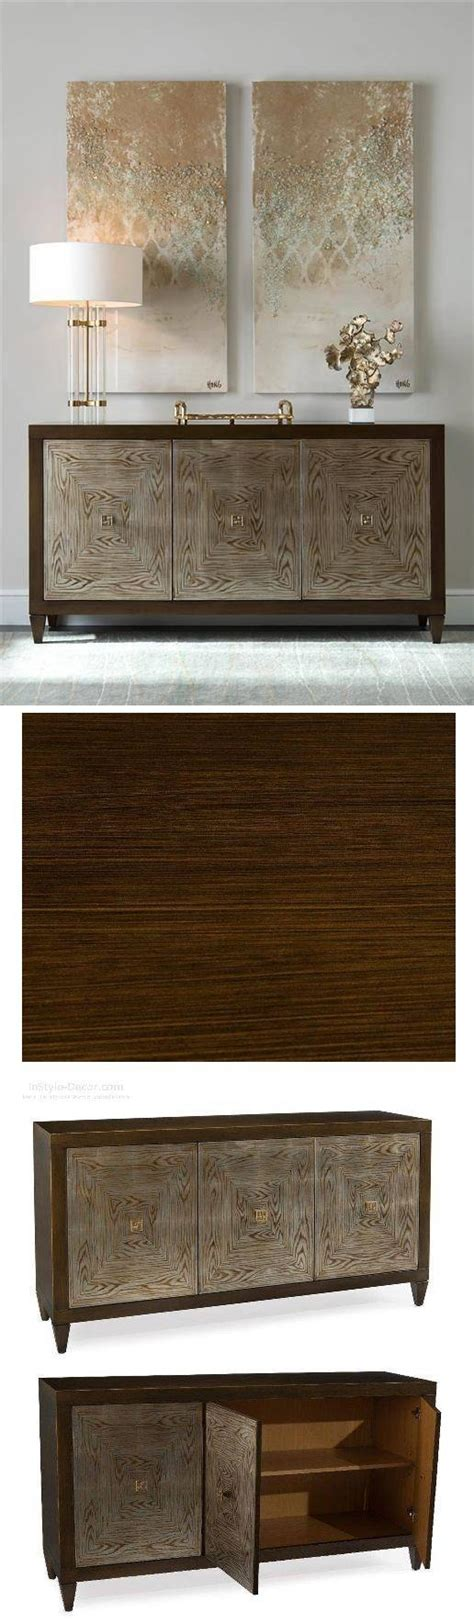 best 25 sideboard buffet ideas on pinterest sideboard 15 best ideas of bedroom sideboards